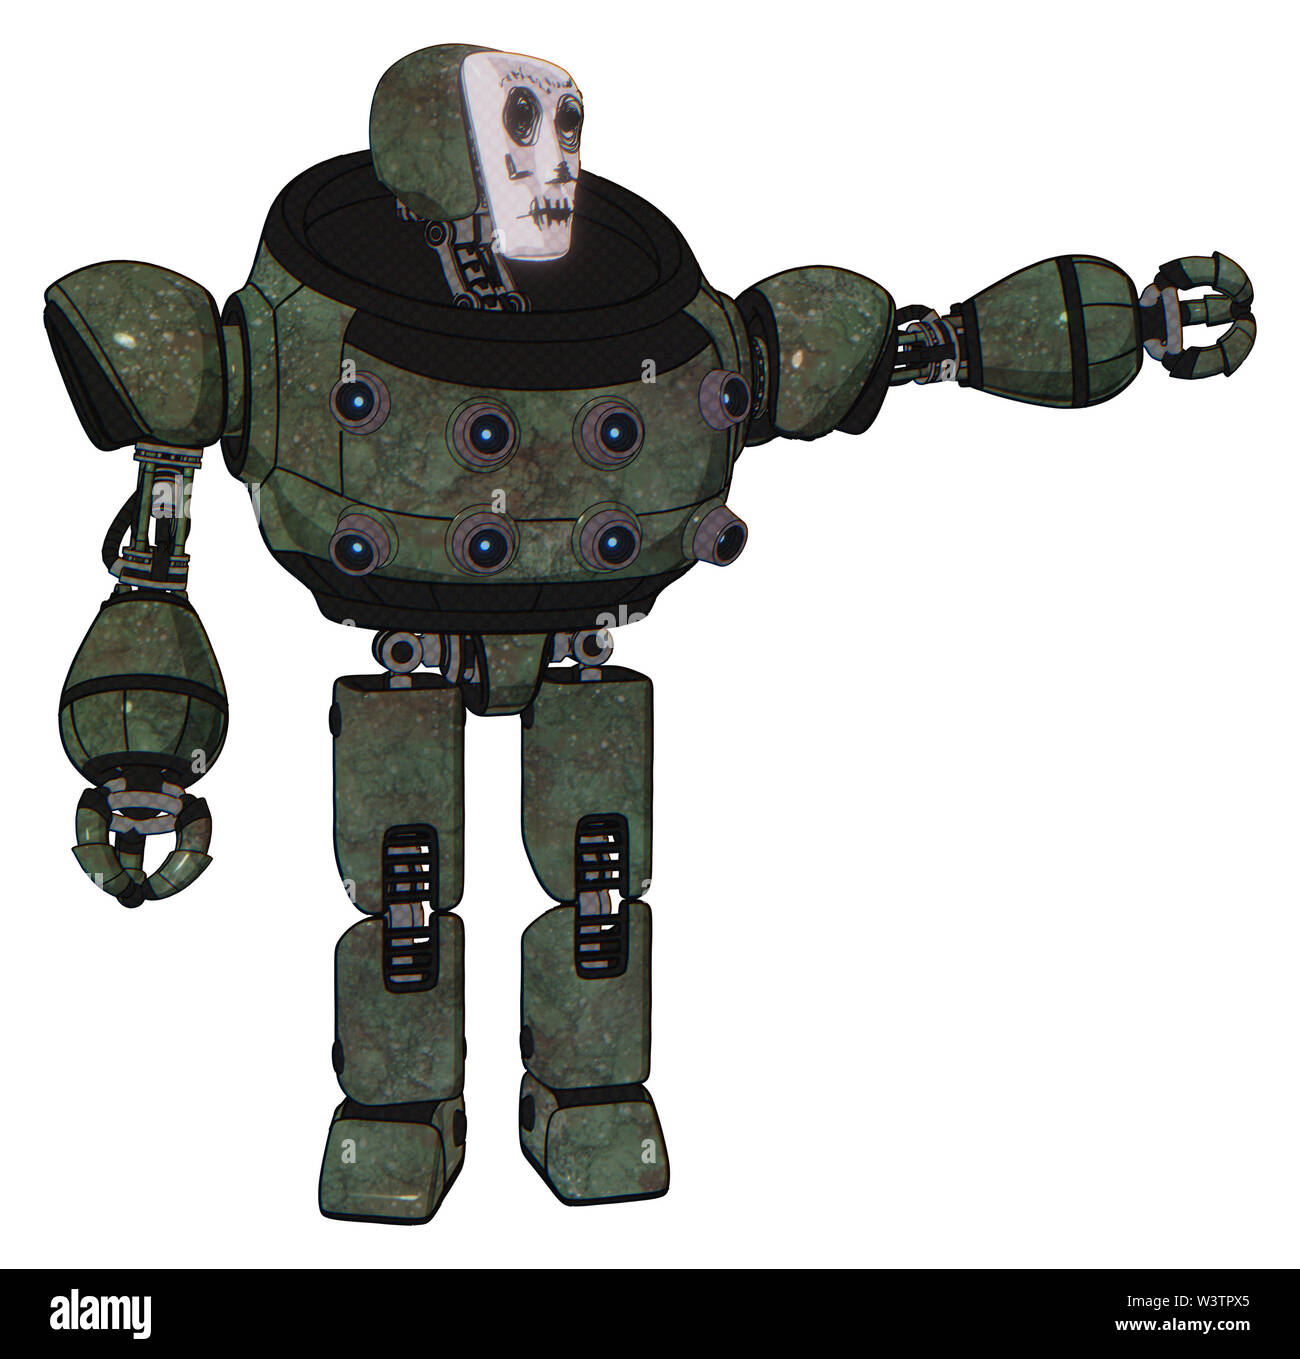 Bot containing elements: humanoid face mask, skeleton war paint, heavy upper chest, chest energy sockets, prototype exoplate legs. Material: old... Stock Photo